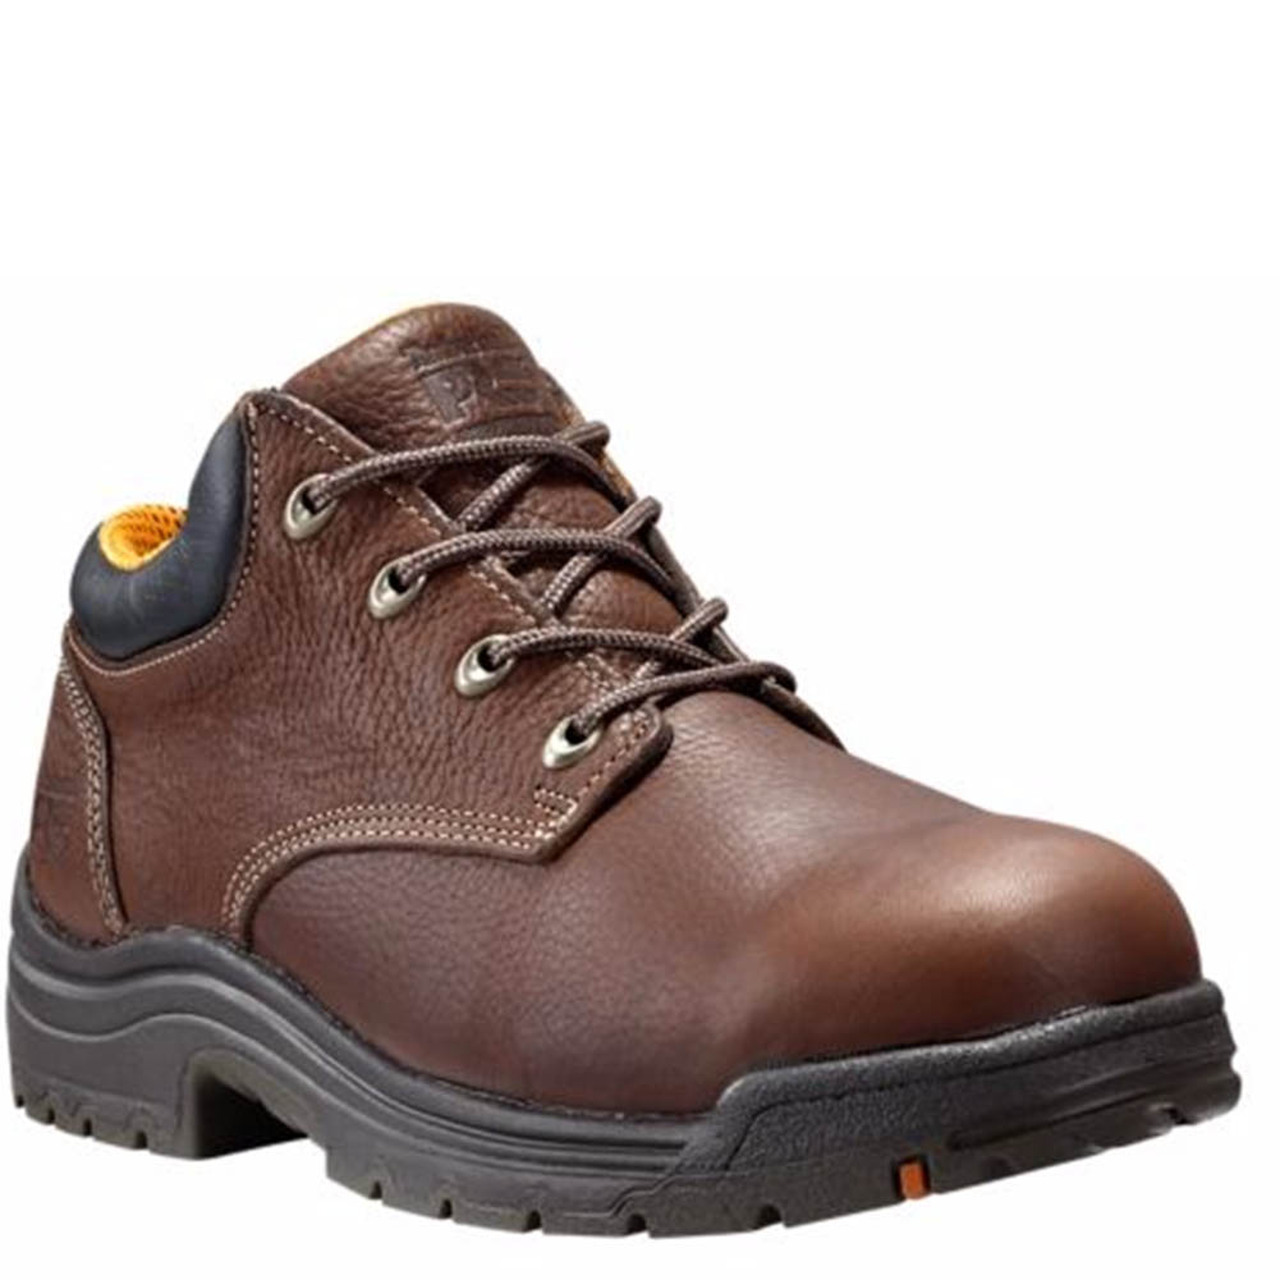 89a3d03c790 Timberland PRO 47028 TITAN Brown Safety Toe Work Shoes